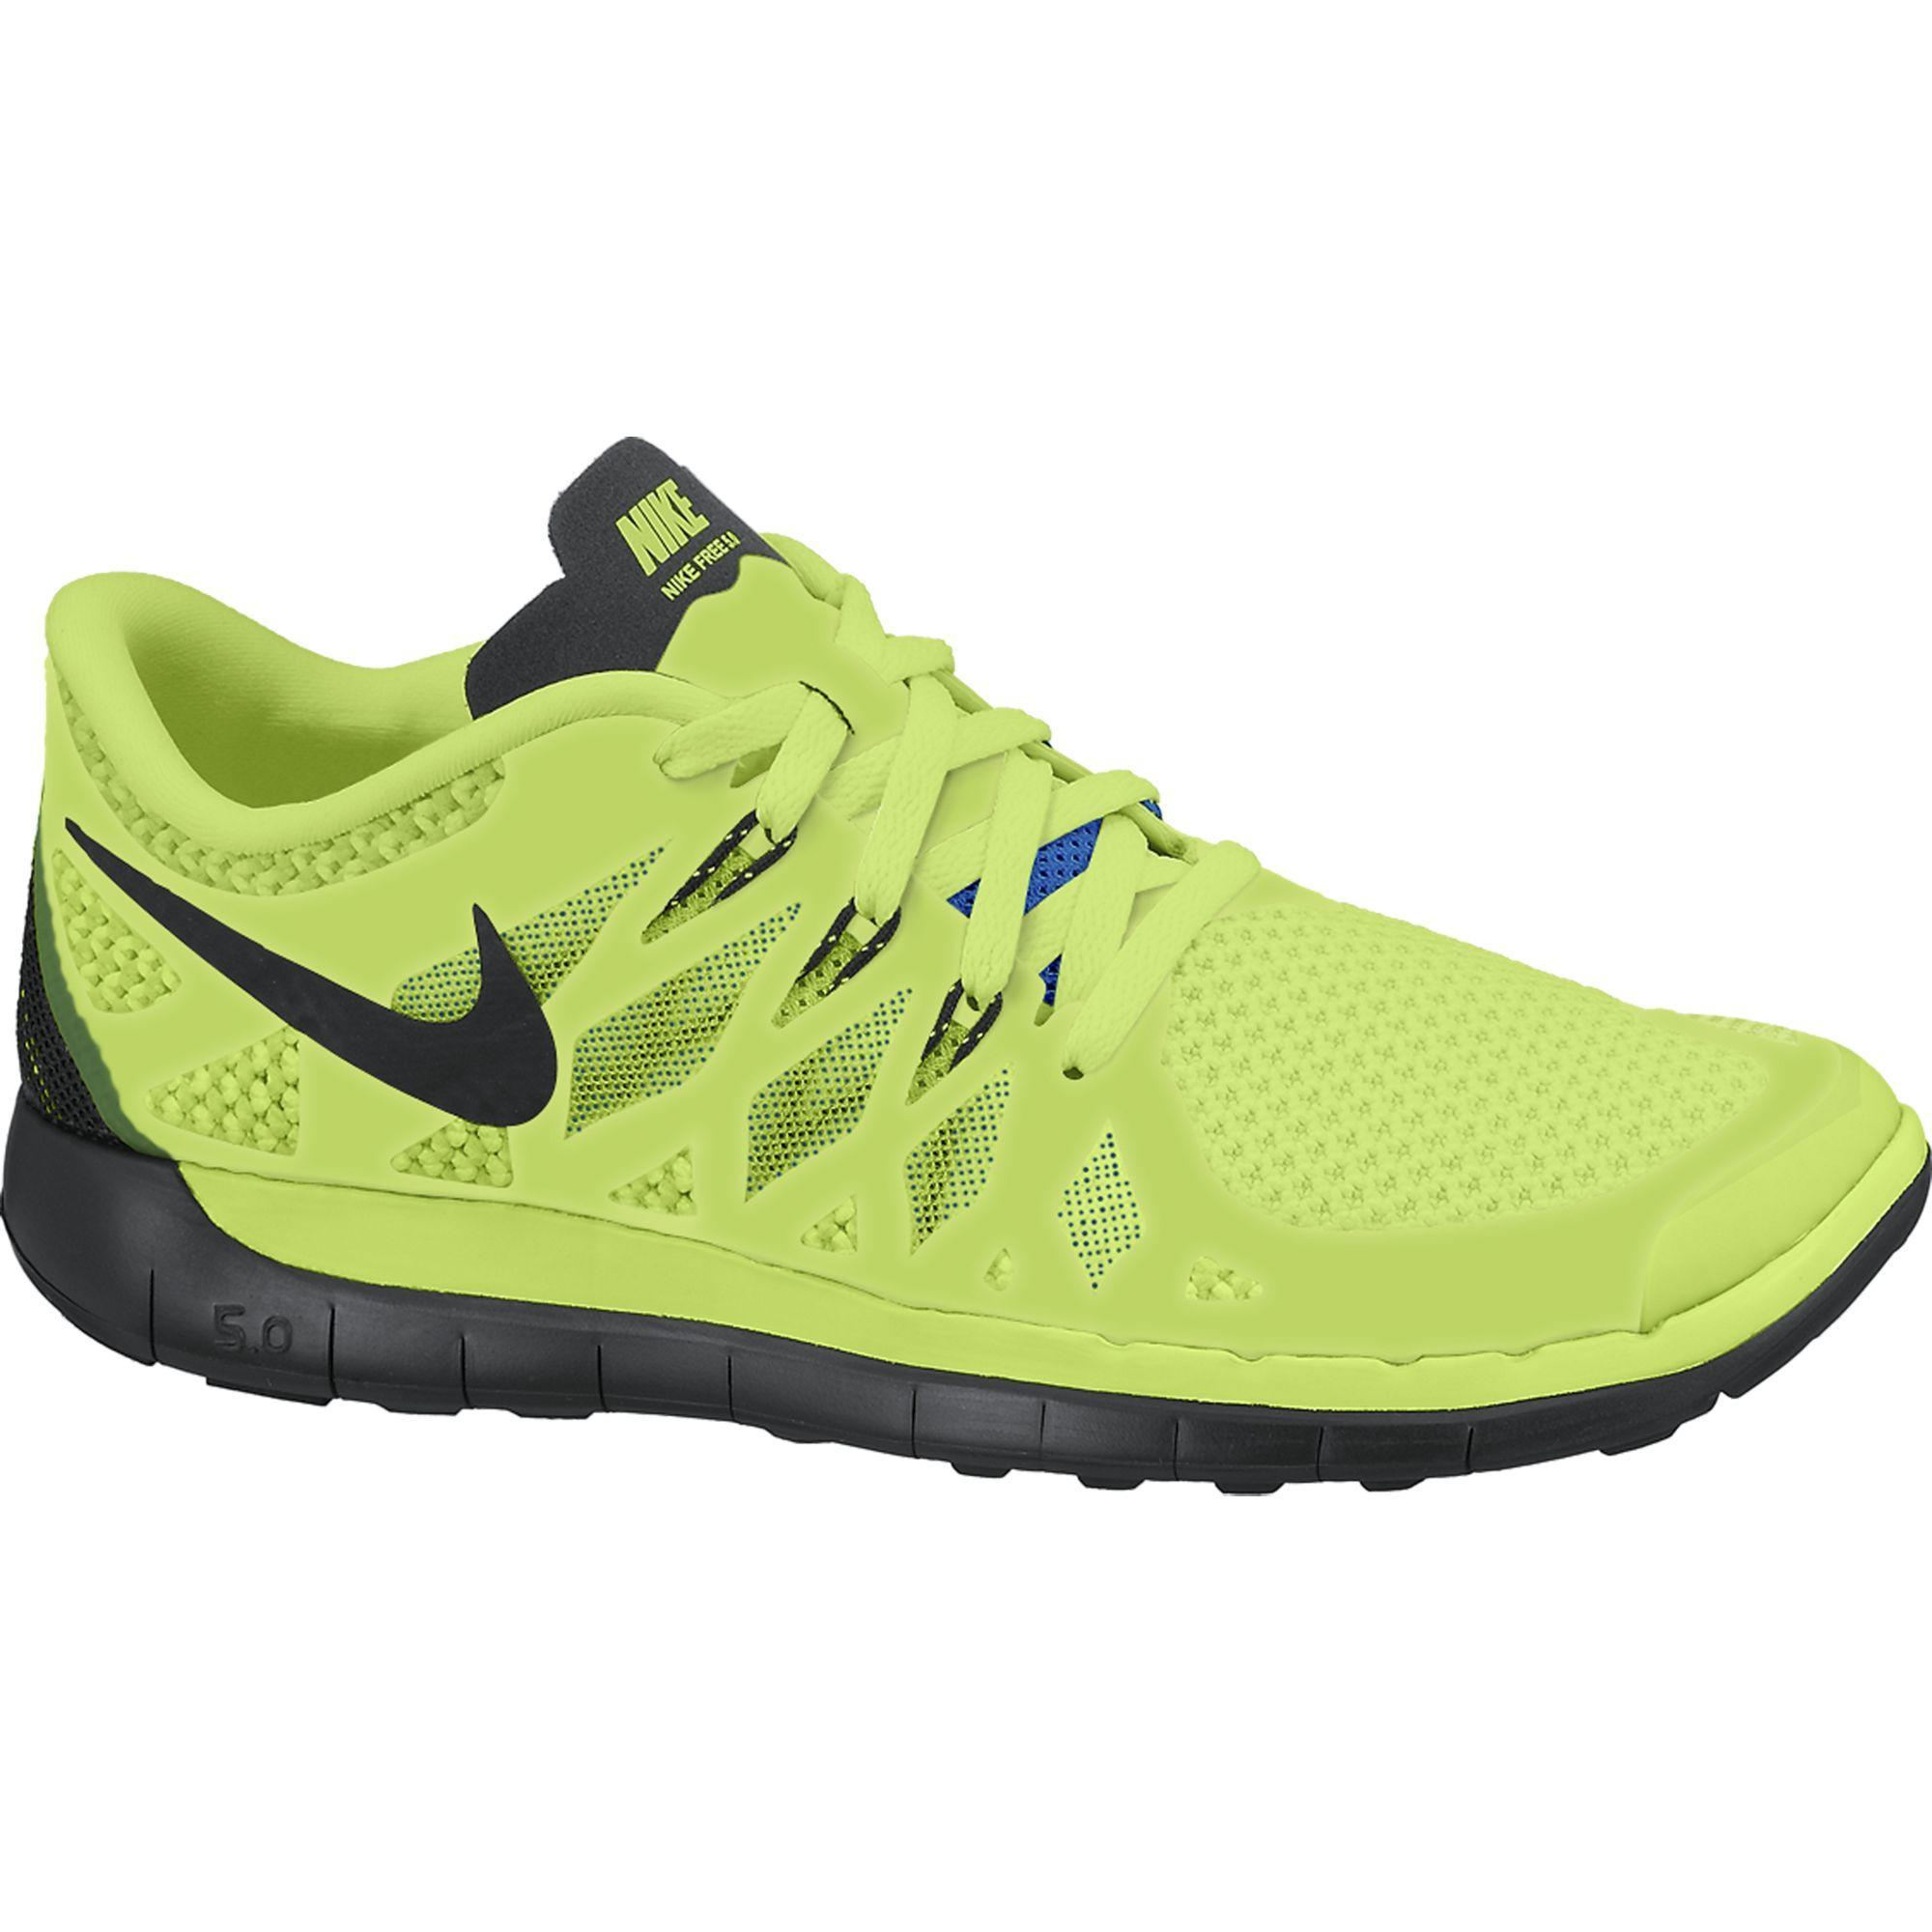 Nike Boys Free 5.0+ Running Shoes - Volt/Black/Electric ...